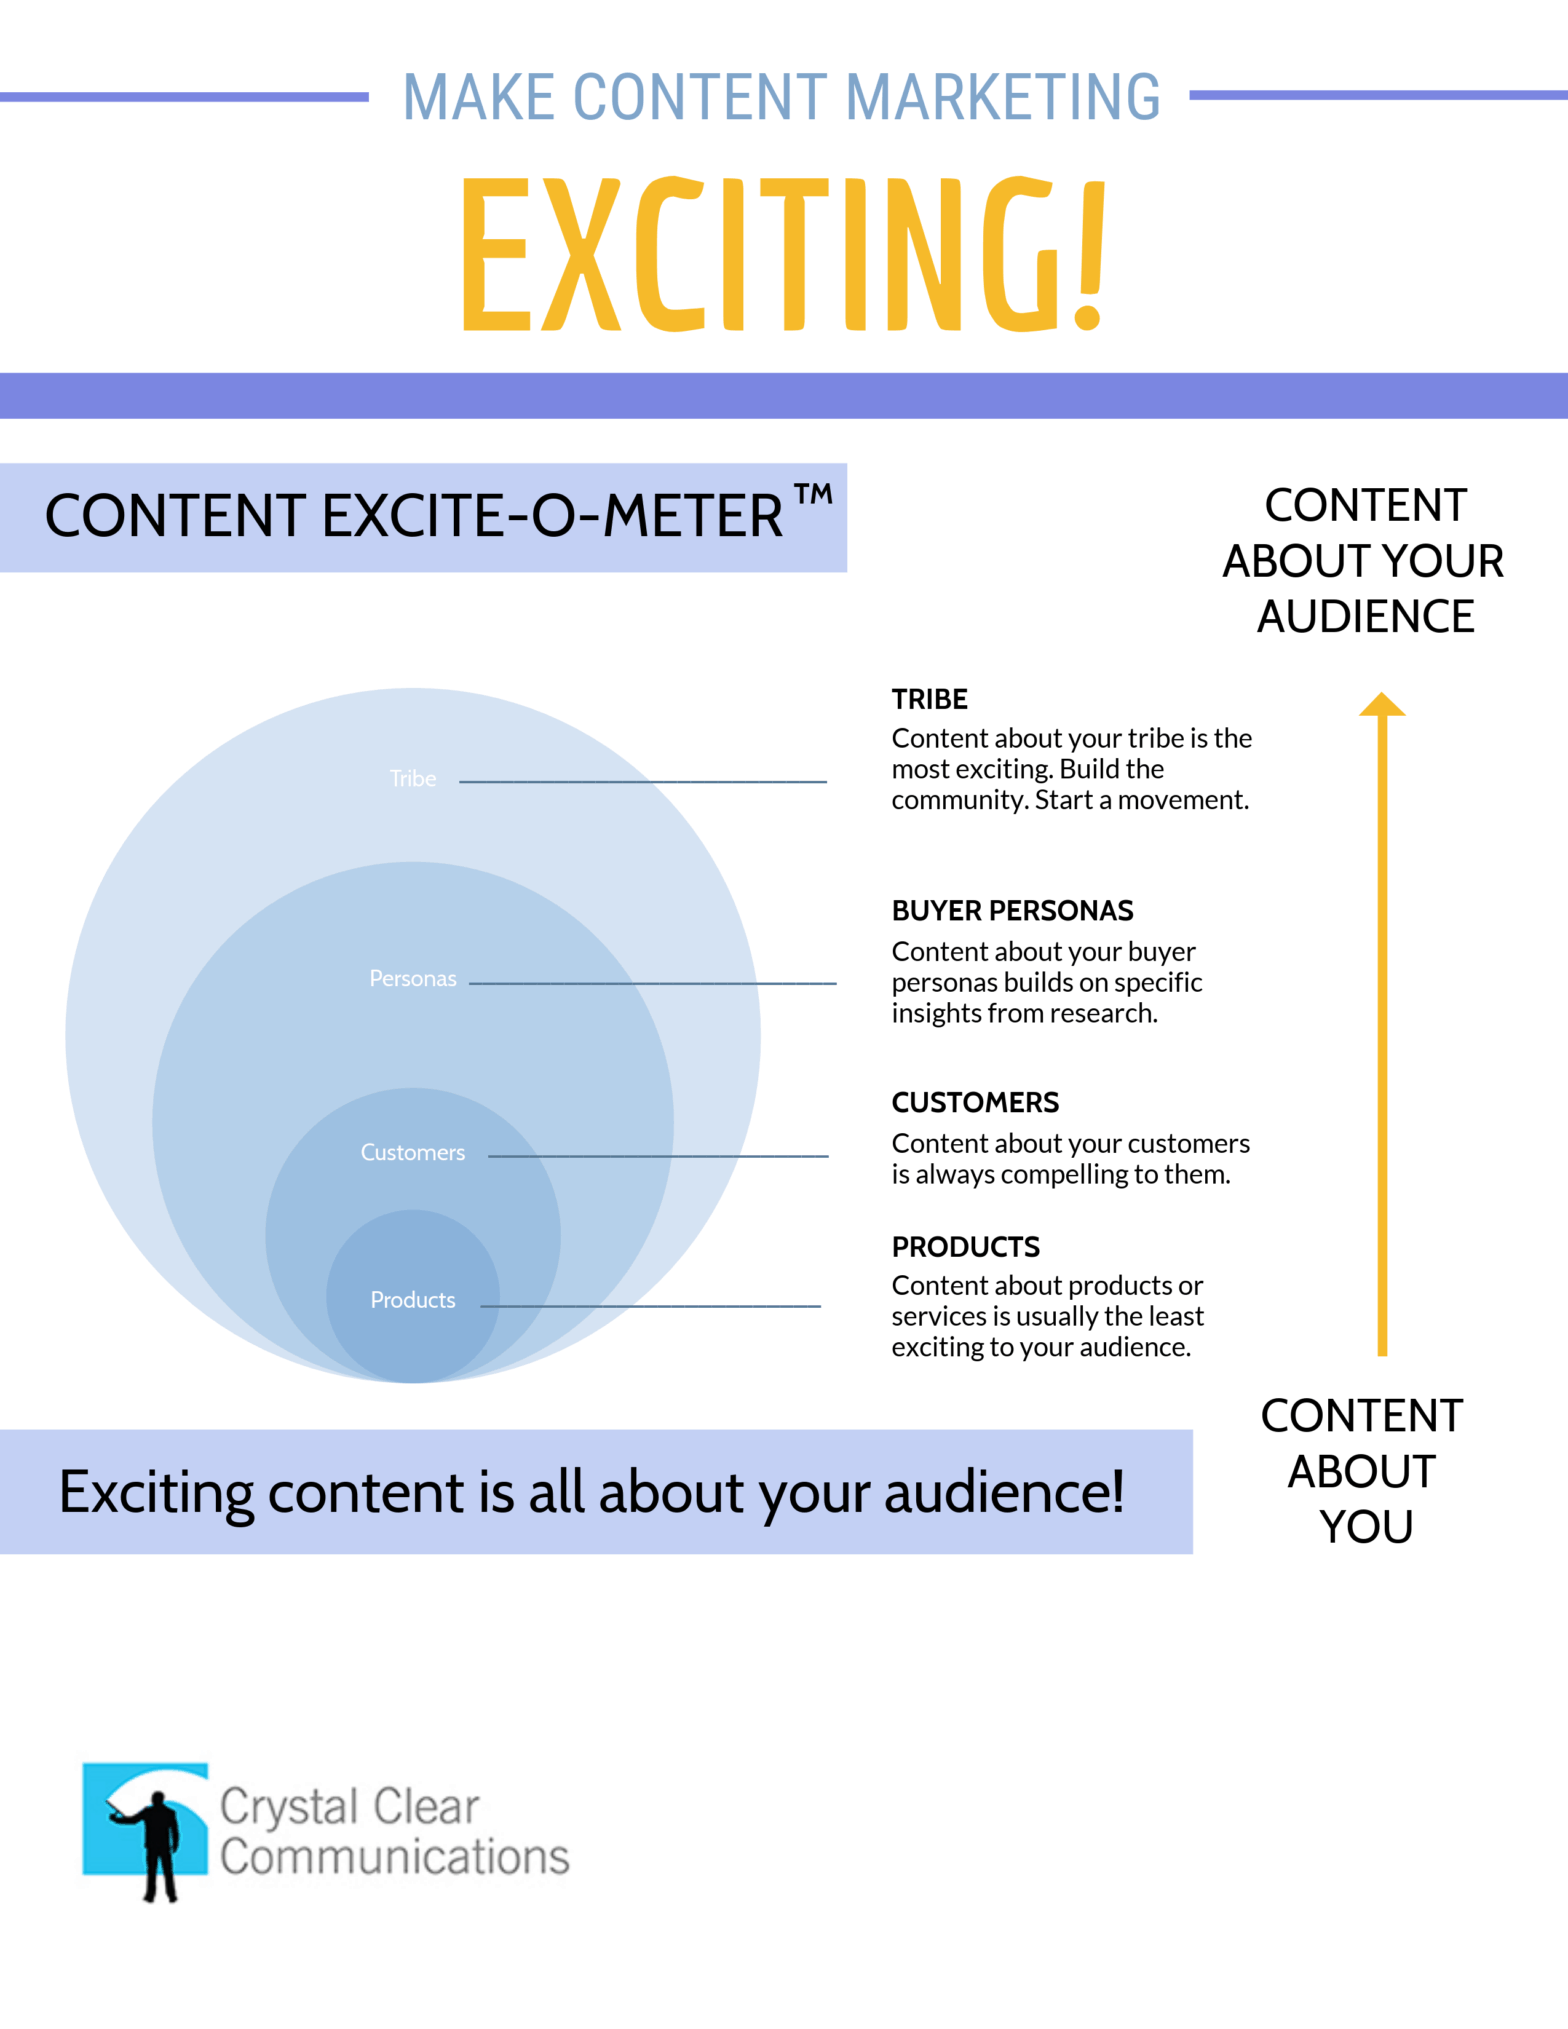 Content Excite-O-Meter